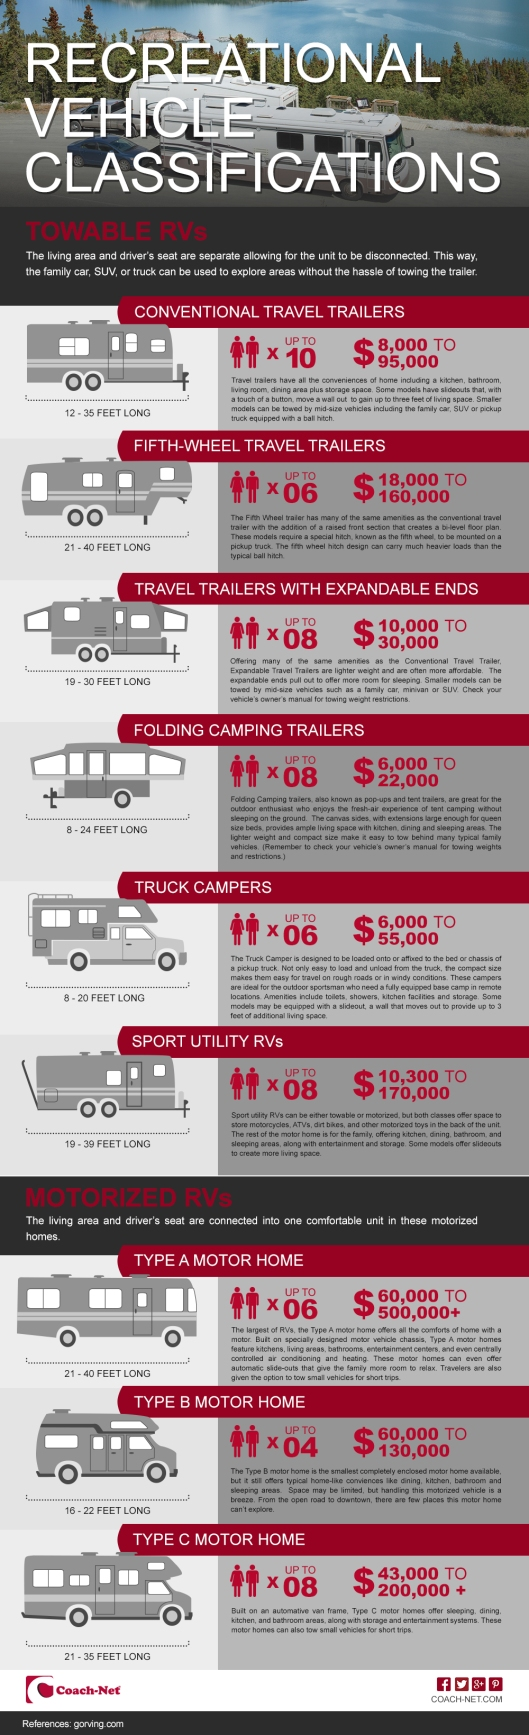 RV Classifications Infographic